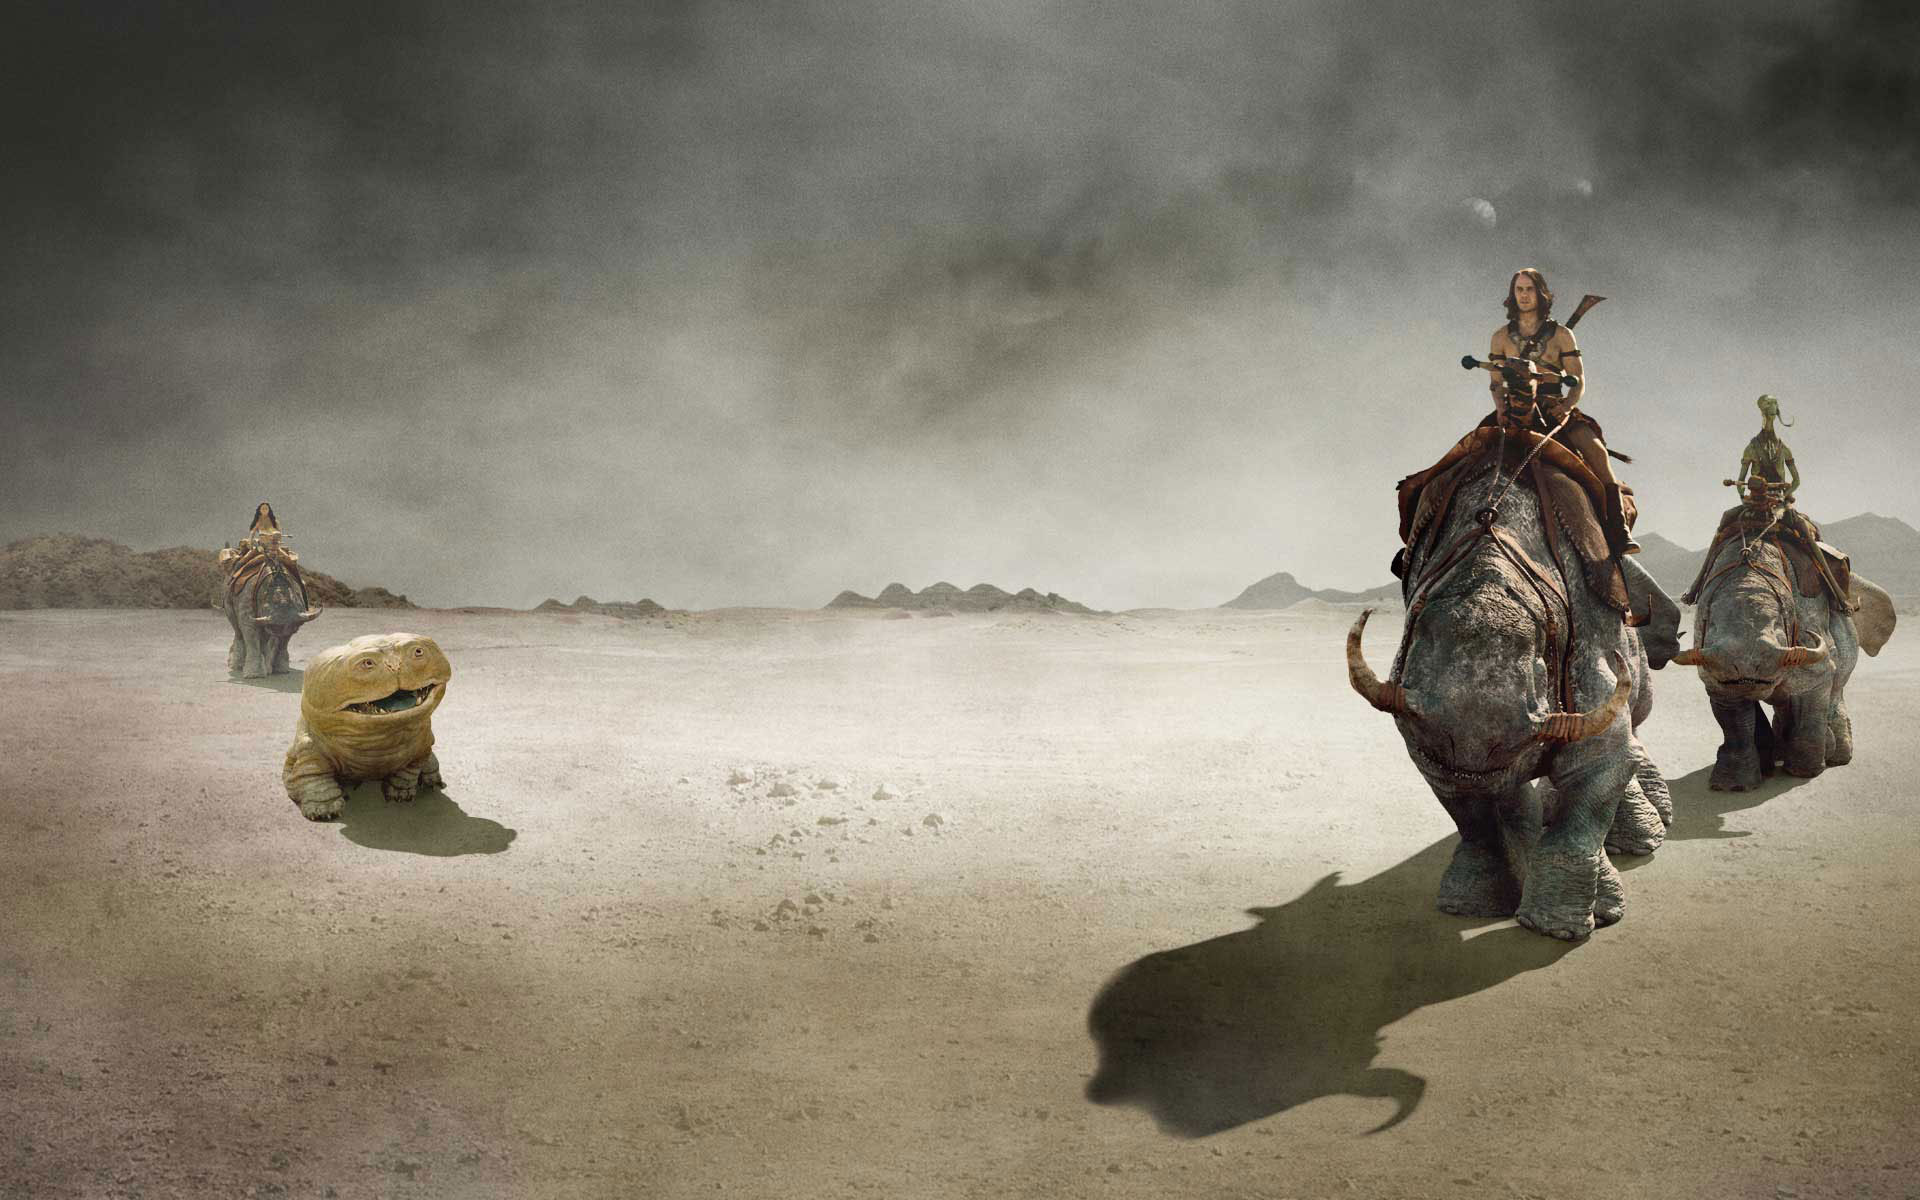 John Carter wallpaper 8